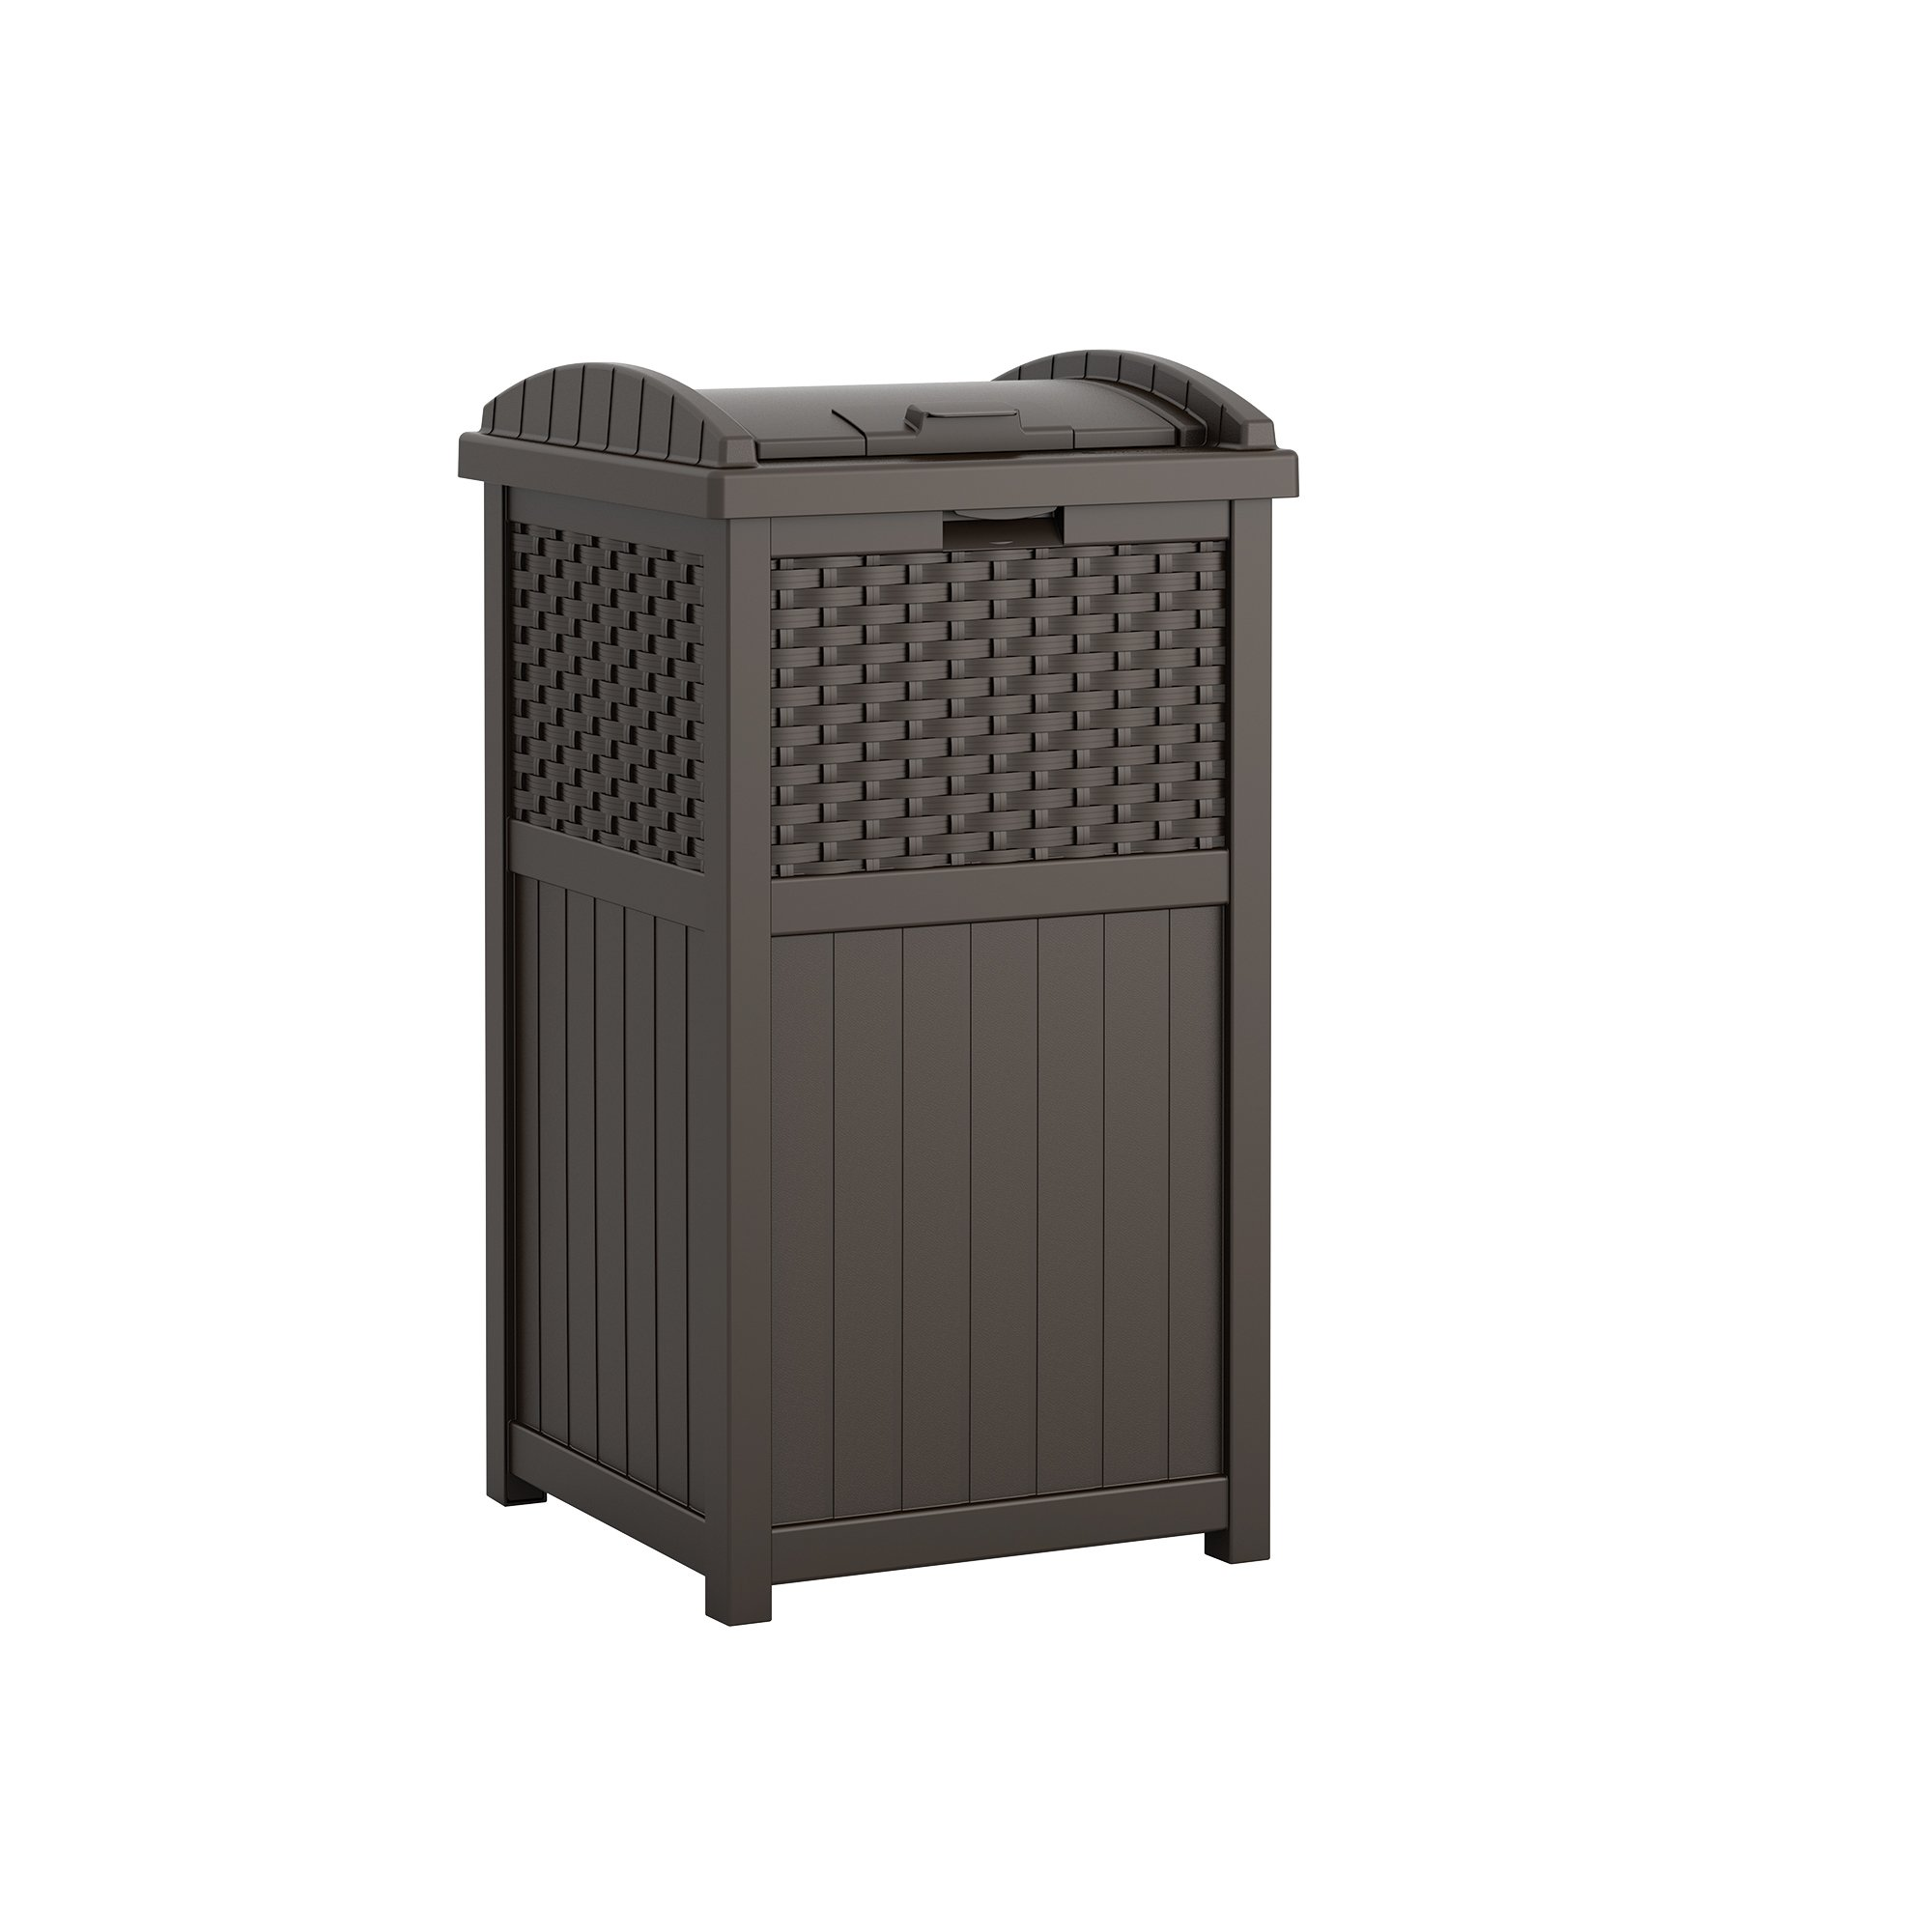 Suncast 33 Gallon Outdoor Trash Can for Patio - Resin Outdoor Trash Hideaway with Lid - Use in Backyard, Deck, or Patio - Brown by Suncast